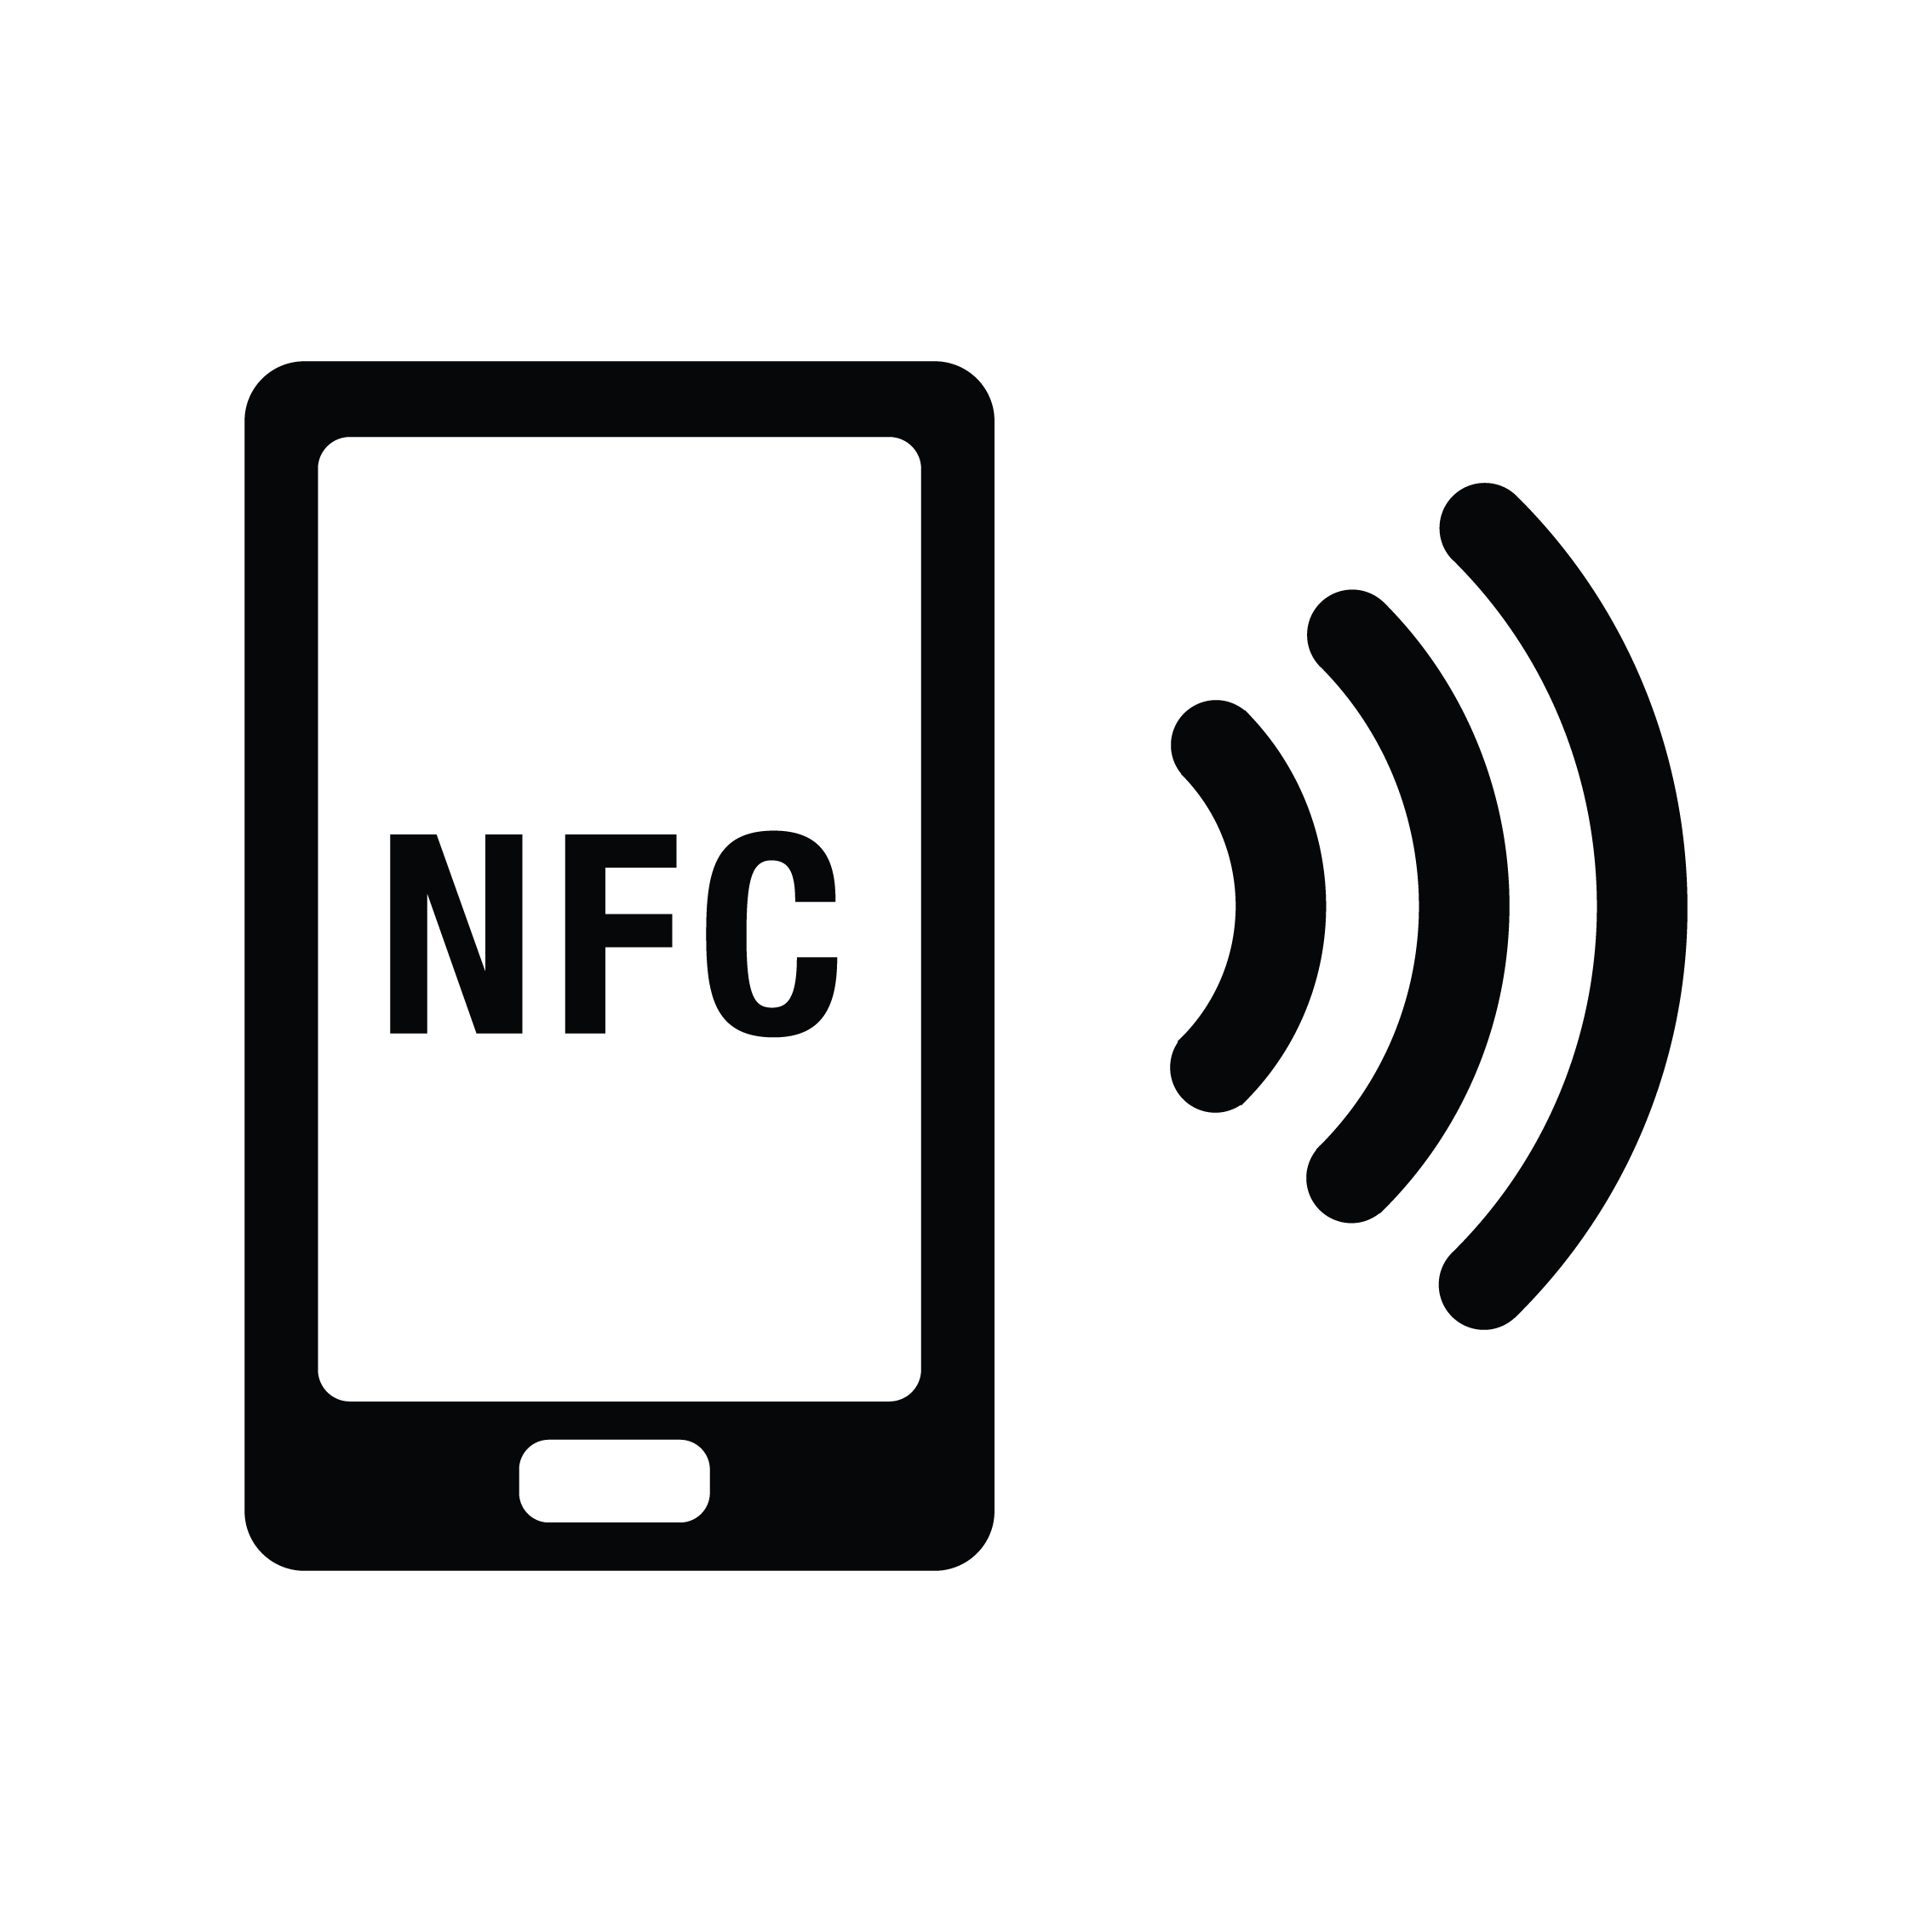 Nfc PNG - 78611